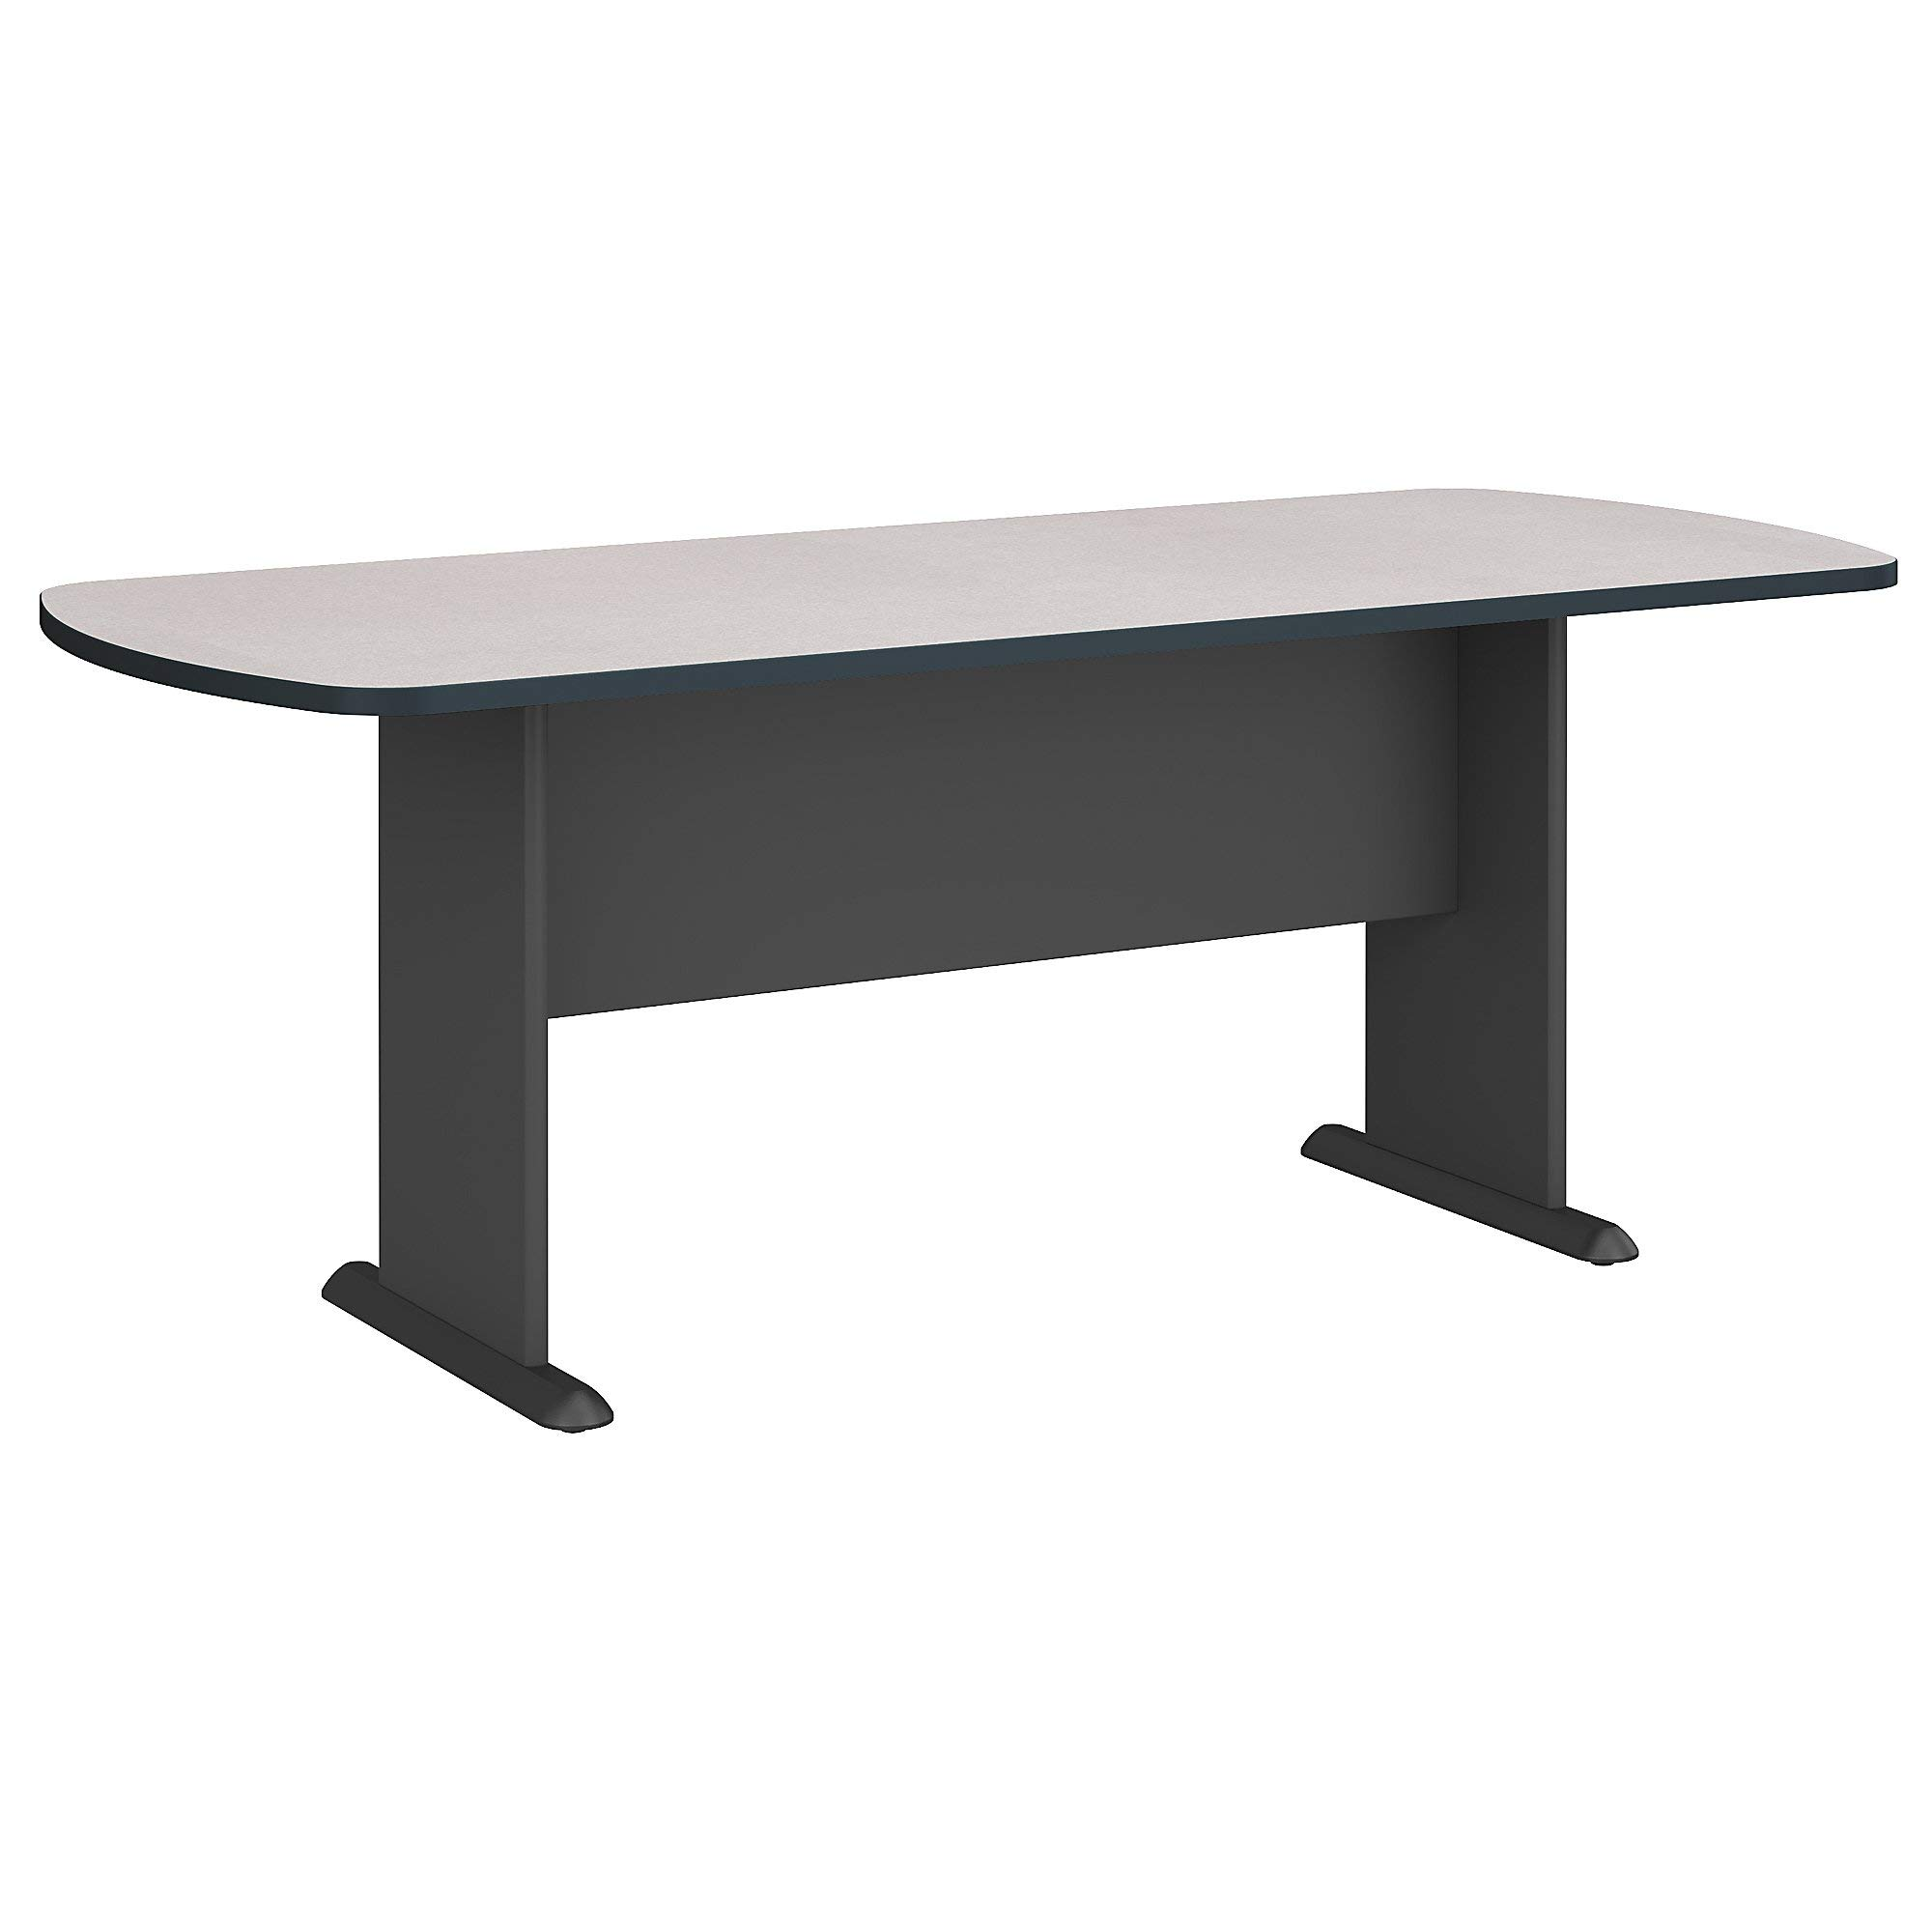 Bush Business Furniture Series A & C 79W x 34D Racetrack Oval Conference Table in Slate by Bush Business Furniture